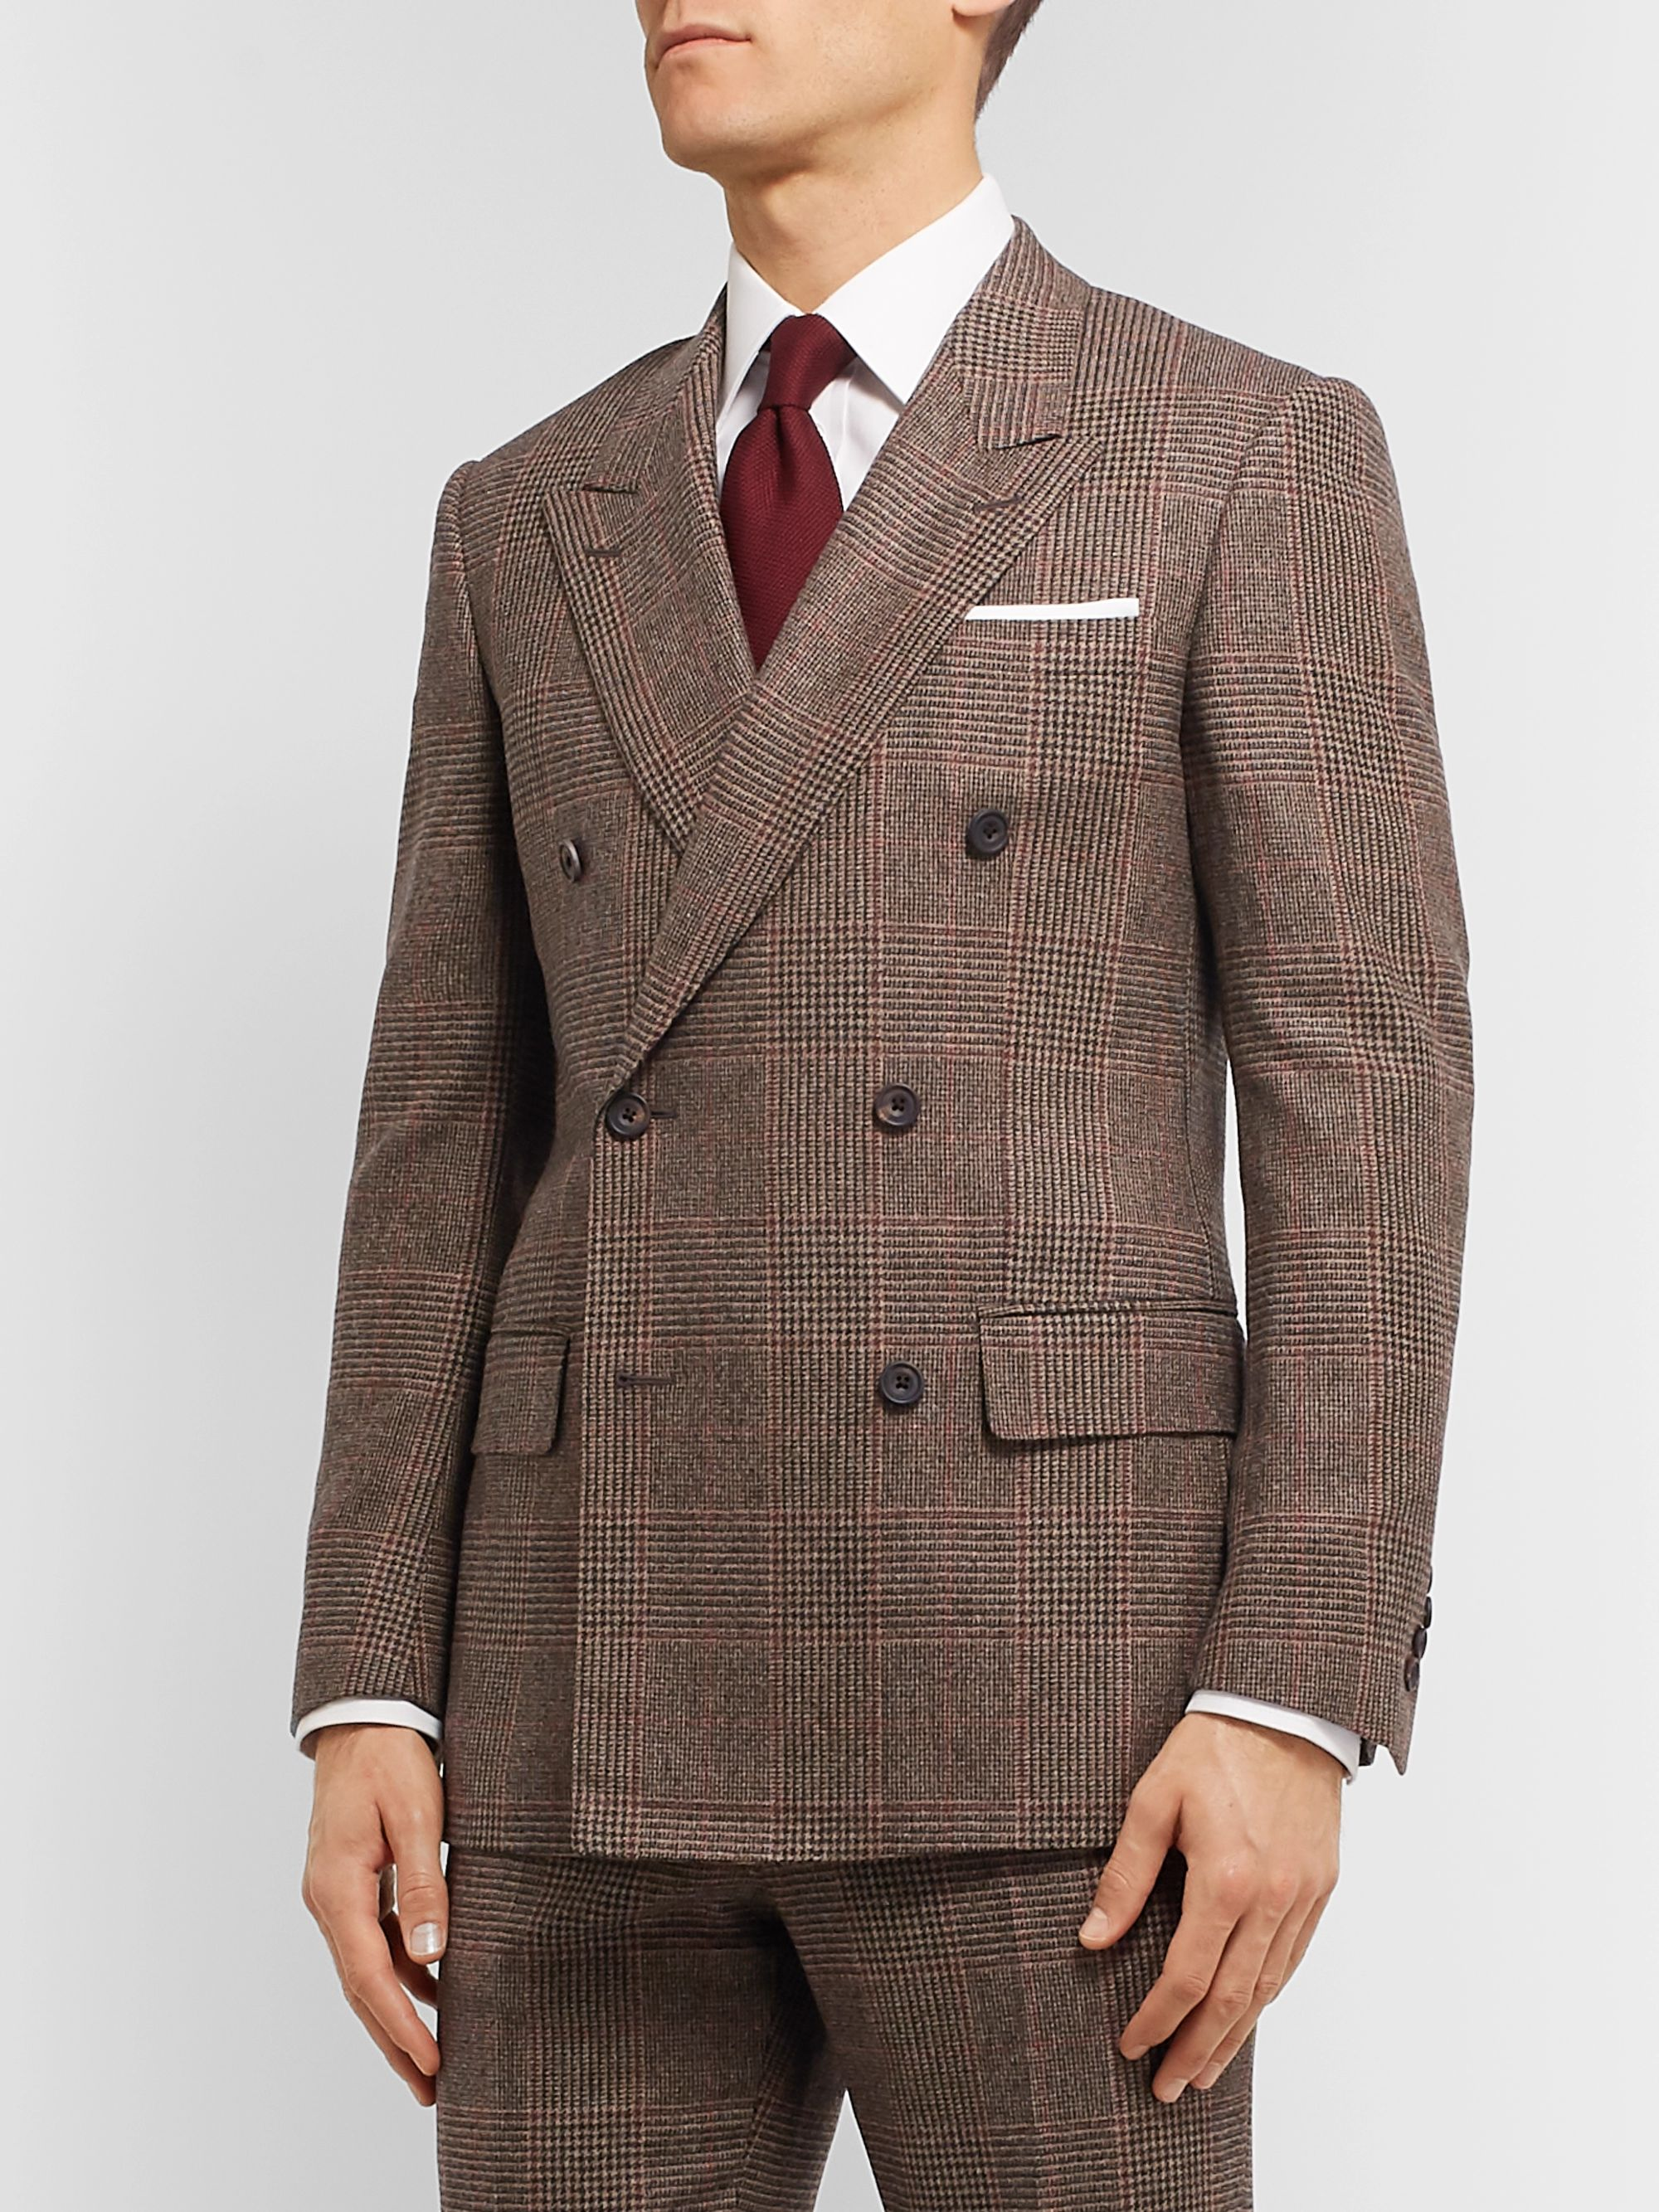 Kingsman Slim-Fit Brown Double-Breasted Prince of Wales Checked Wool Suit Jacket